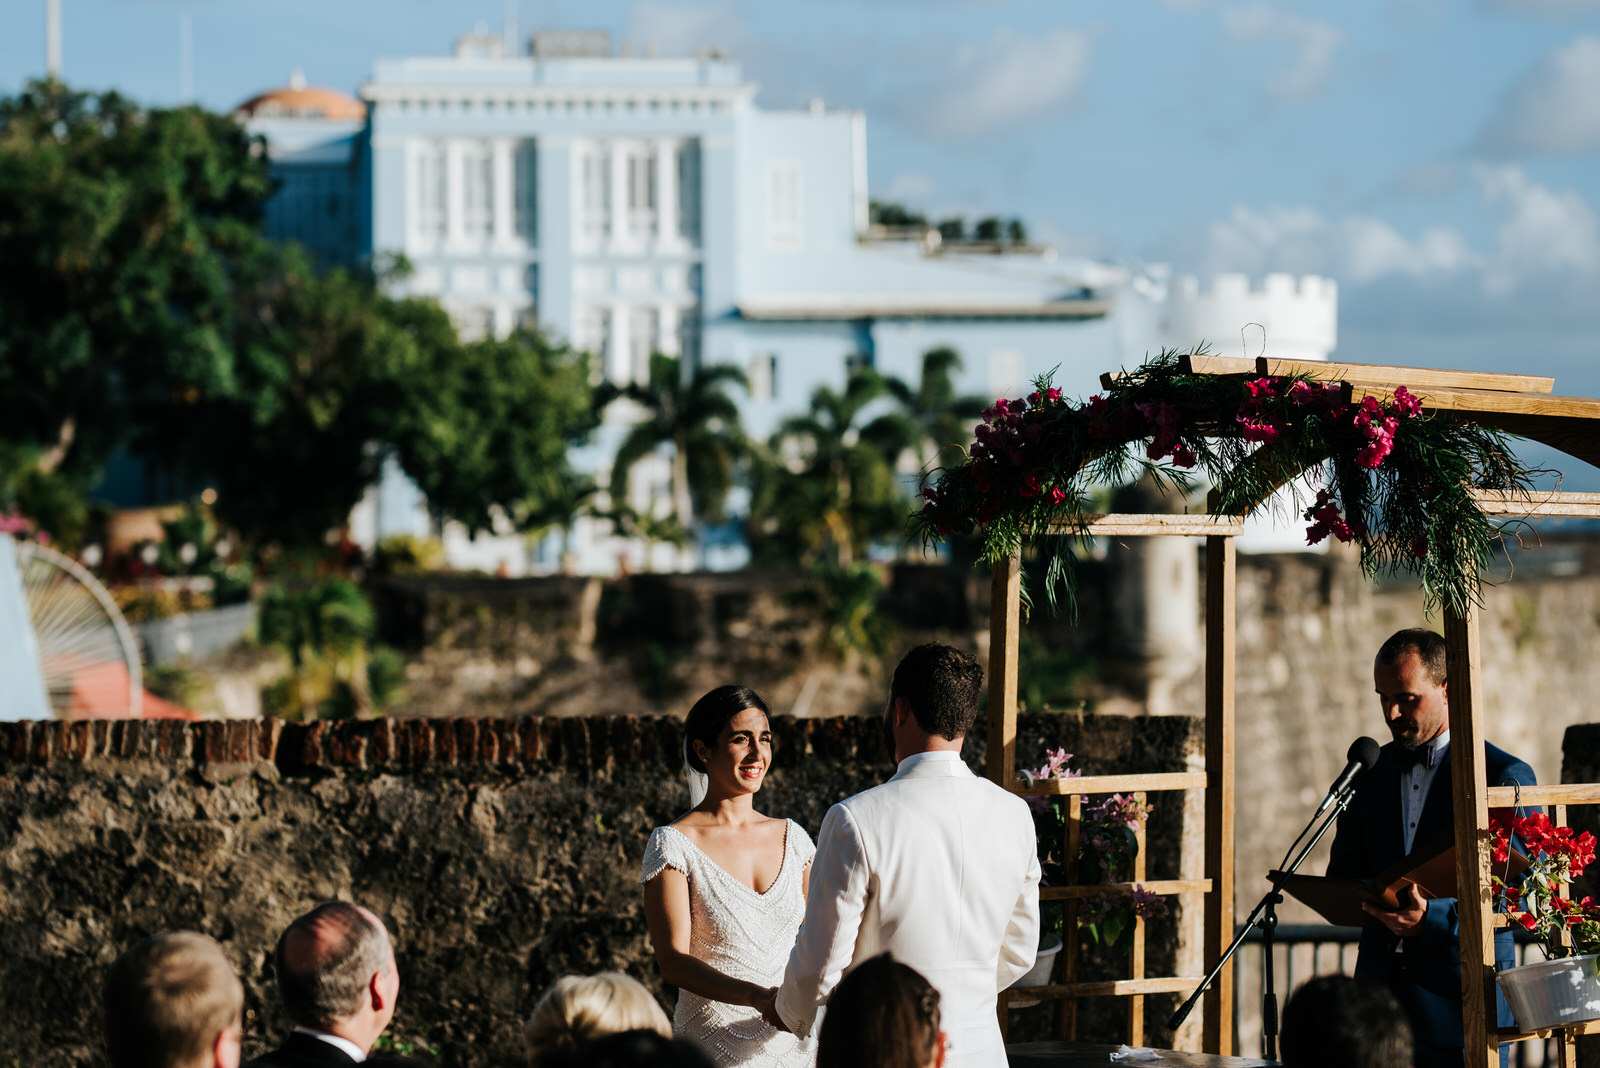 Wide photograph of where the wedding ceremony took place at La Rogativa in Old San Juan, Puerto Rico with the bride and groom holding hands and smiling at the front and La Fortaleza in the back